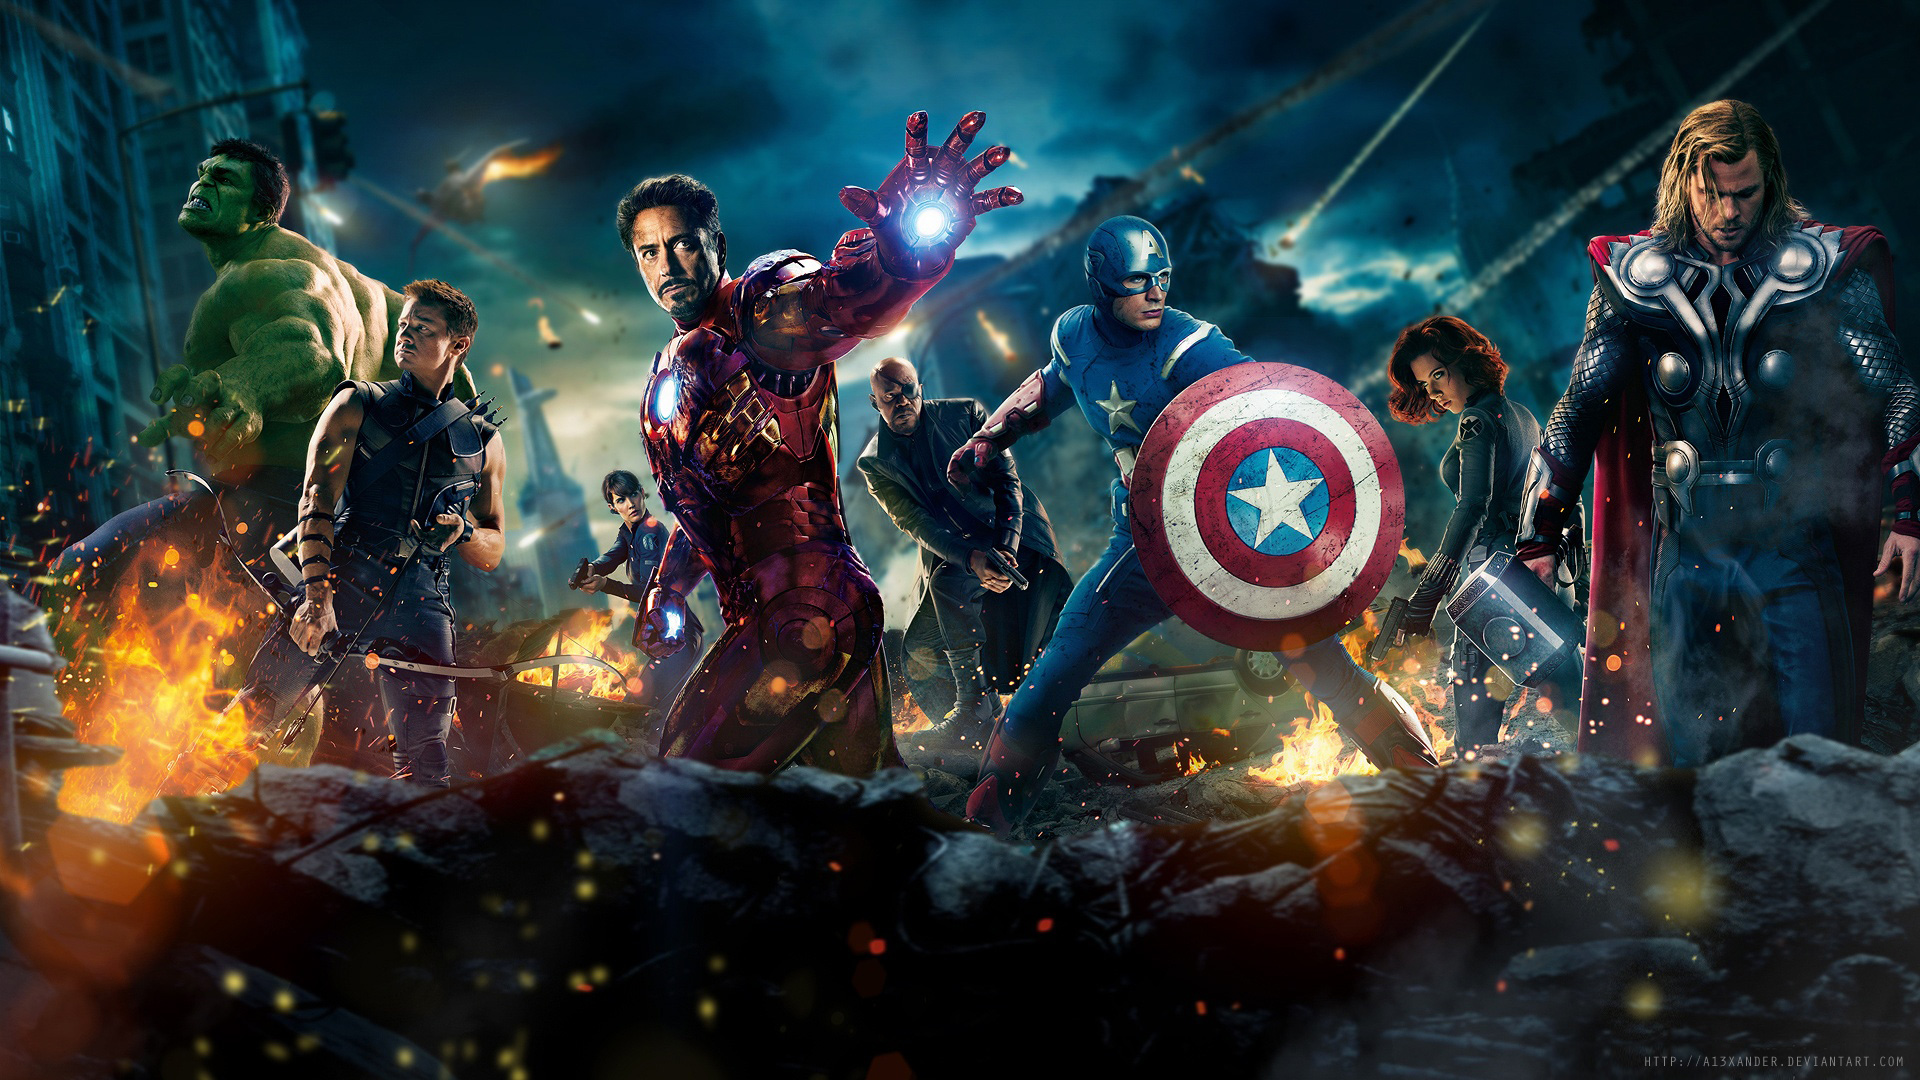 Iron Man Avengers the movie download full hd 1080p wallpaper movie 1920x1080